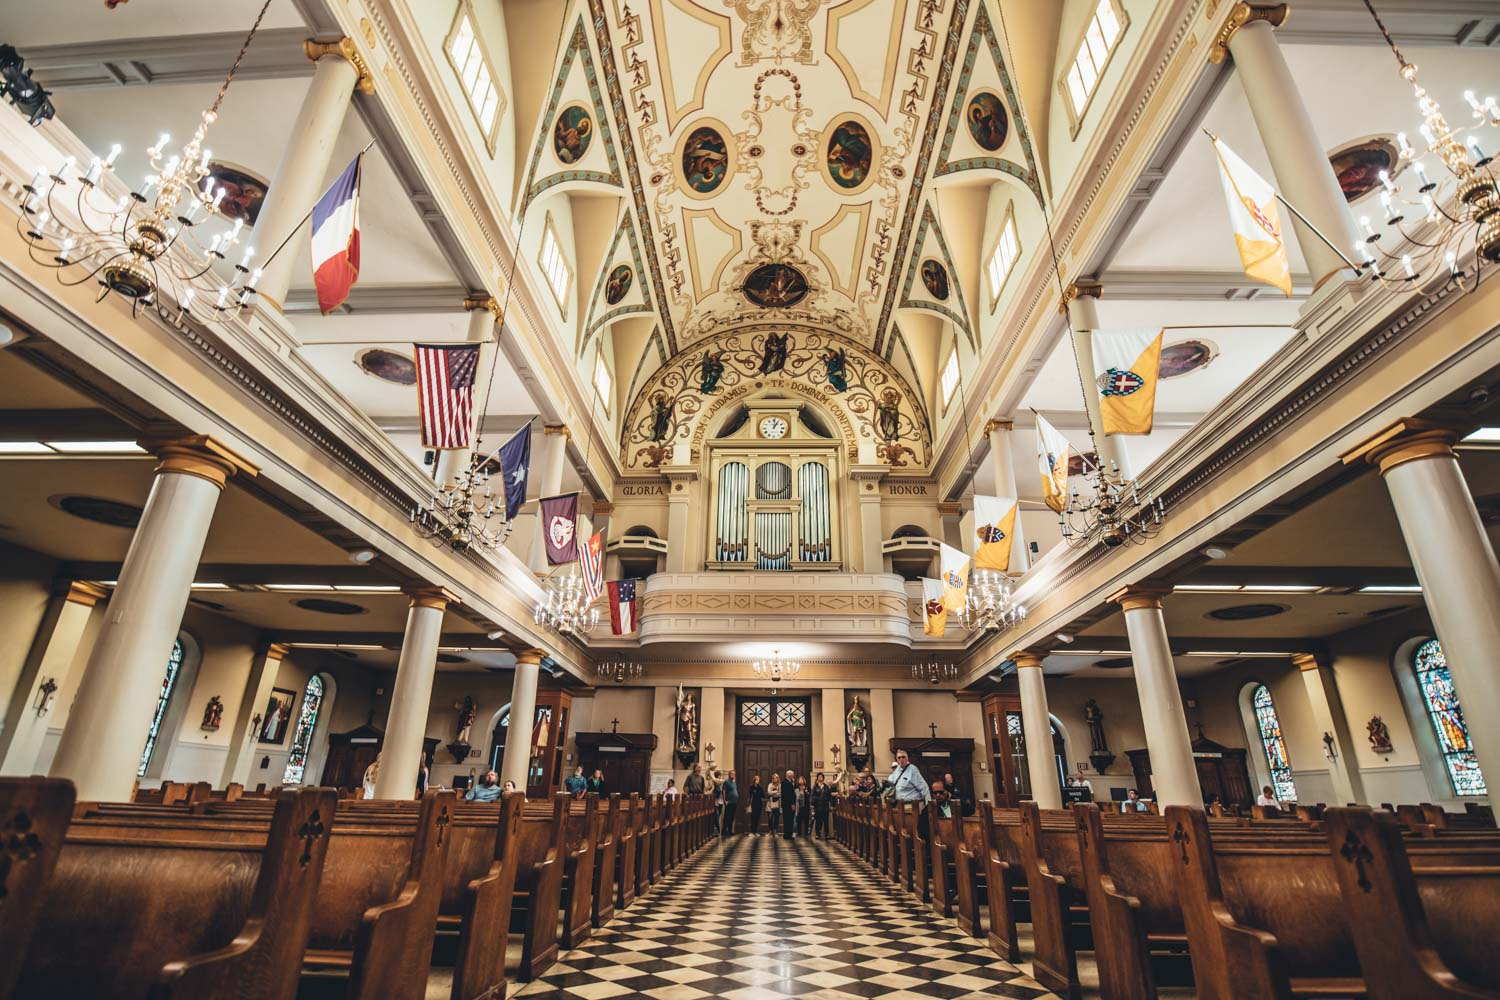 St. Louis Cathedral - 2 Days in New Orleans Itinerary